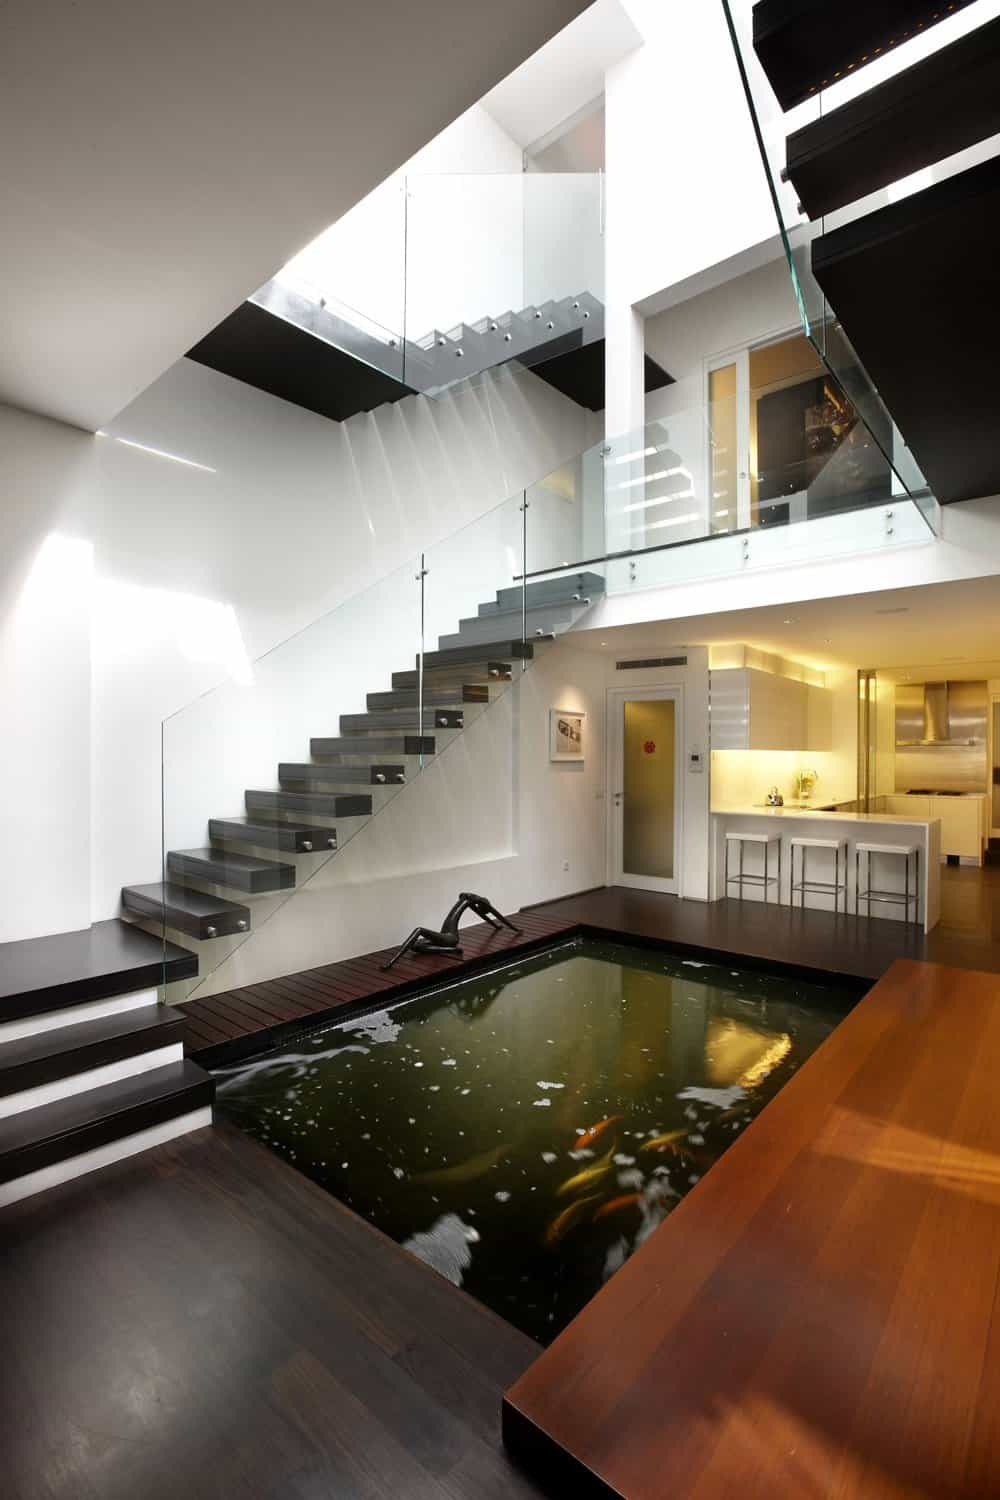 35 Sublime Koi Pond Designs and Water Garden Ideas for ... on Modern Pond Ideas id=79314